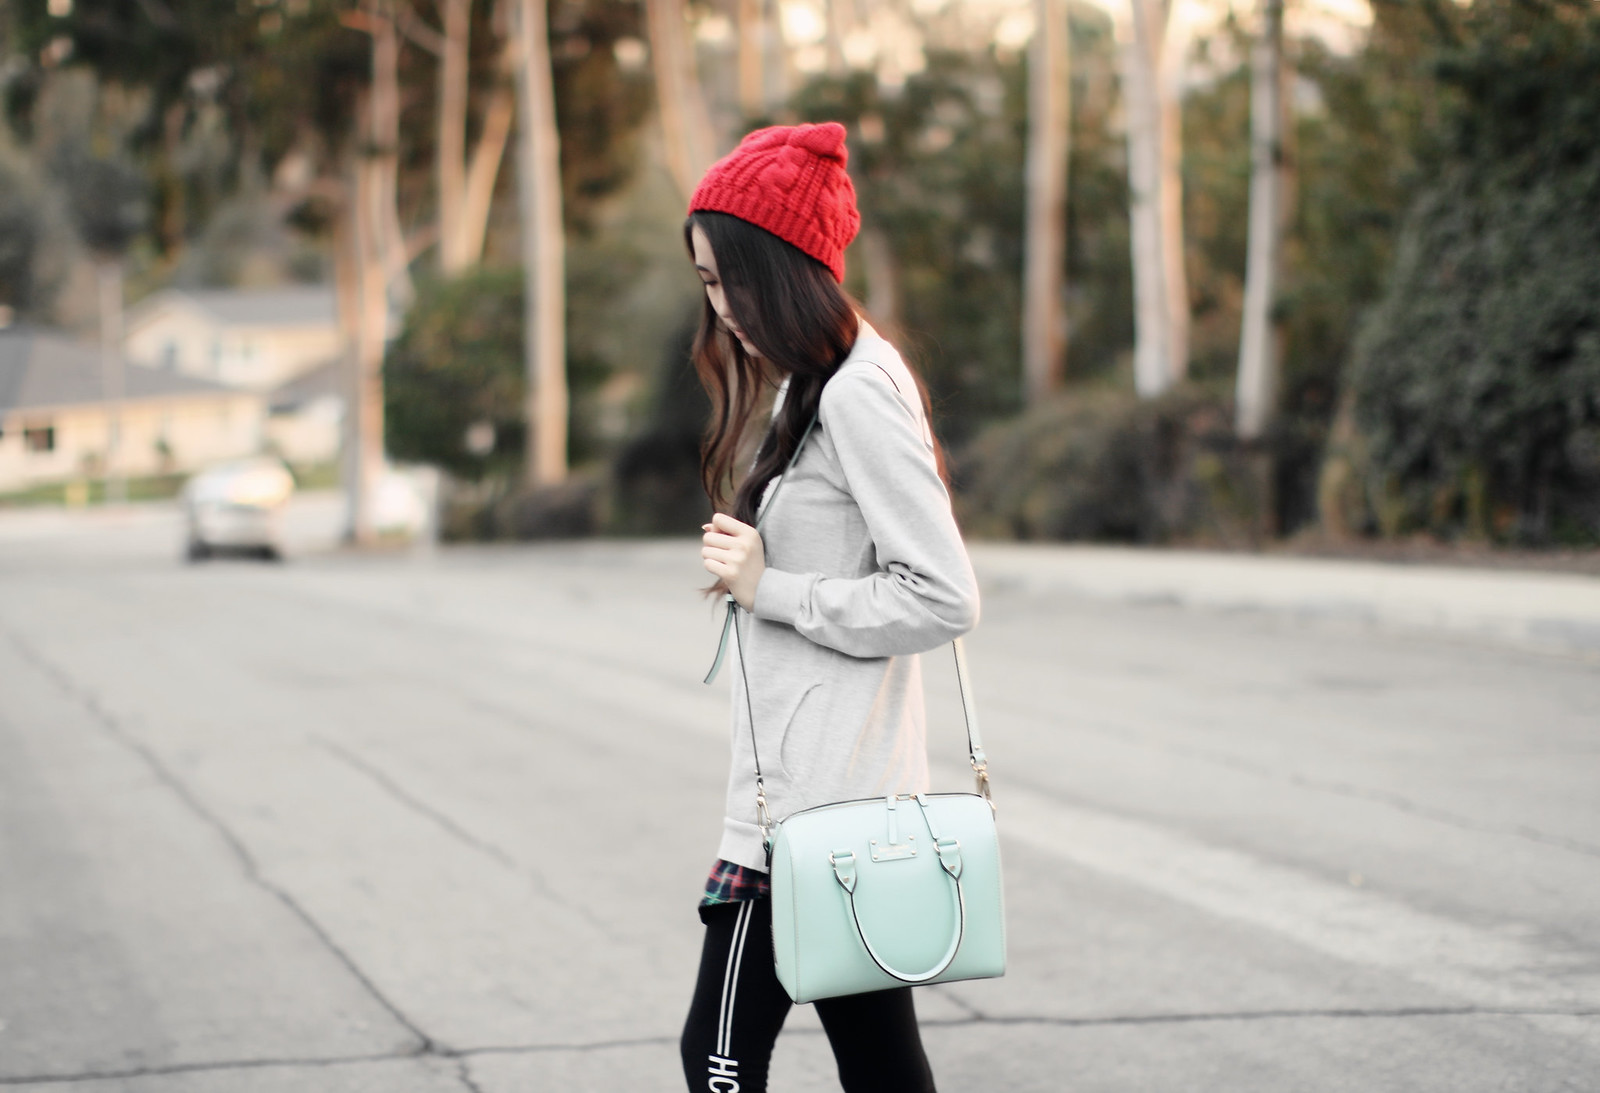 1271-ootd-sweaterdress-koreanfashion-asianfashion-korean-fall-yesstyle-sweaterweather-clothestoyouuu-blogger-elizabeeetht